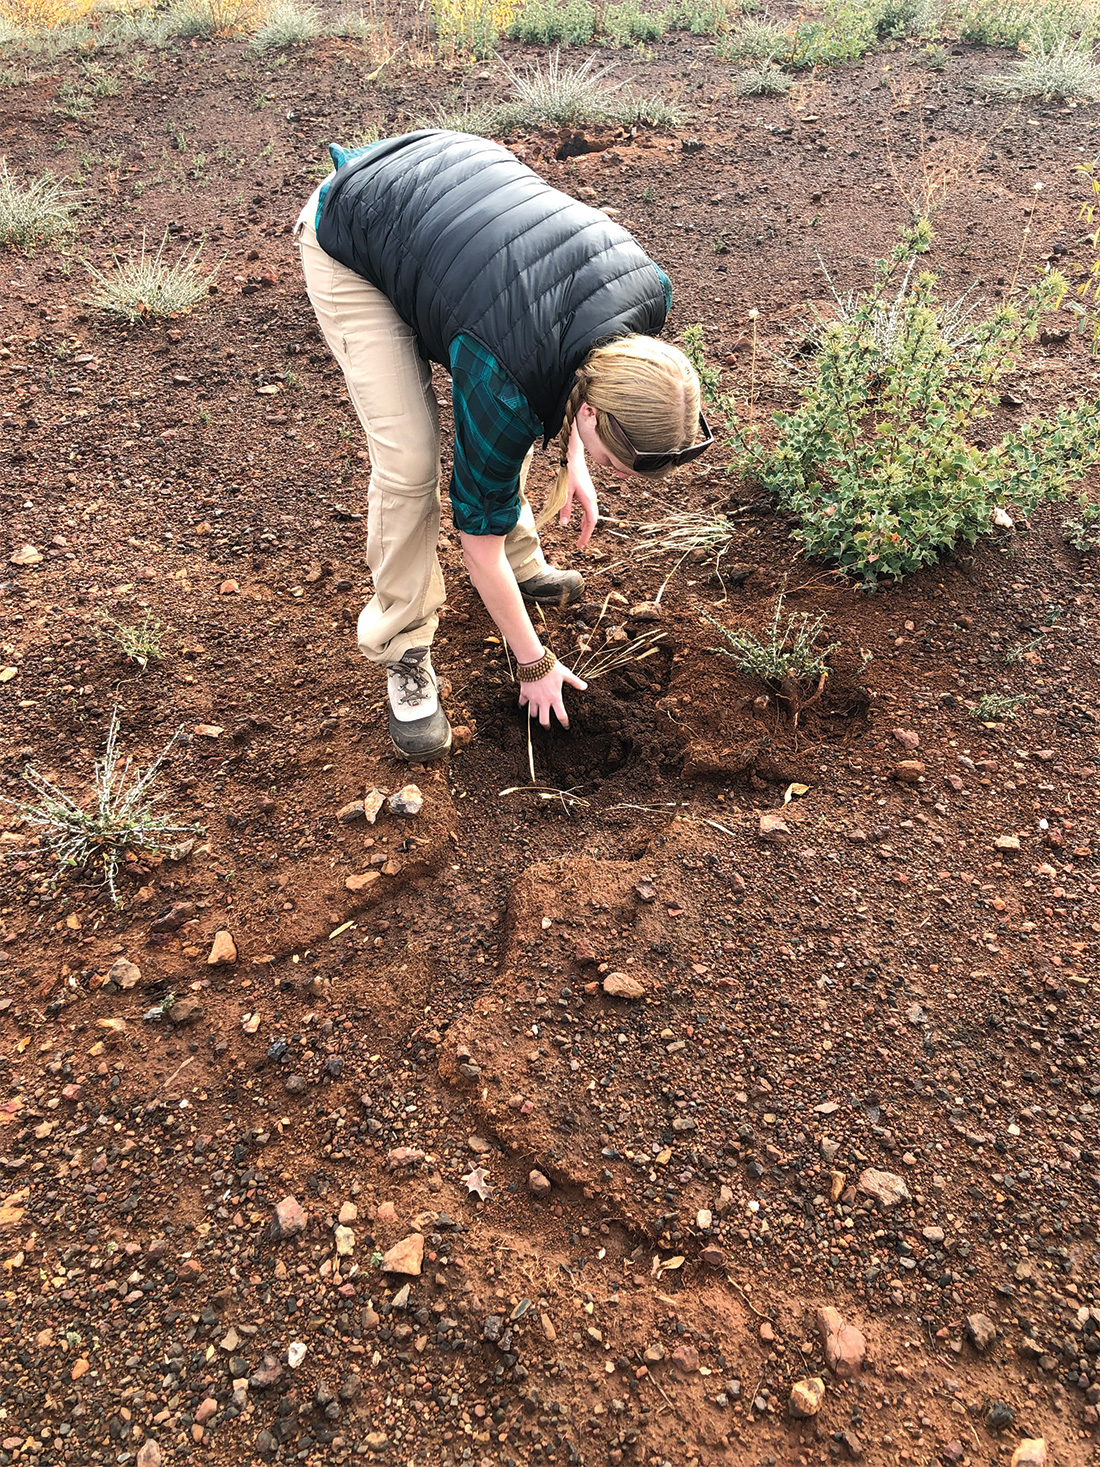 American Forests California State Director Brittany Dyer tests soil quality at a planting site American Forests is reforesting after the Camp Fire.